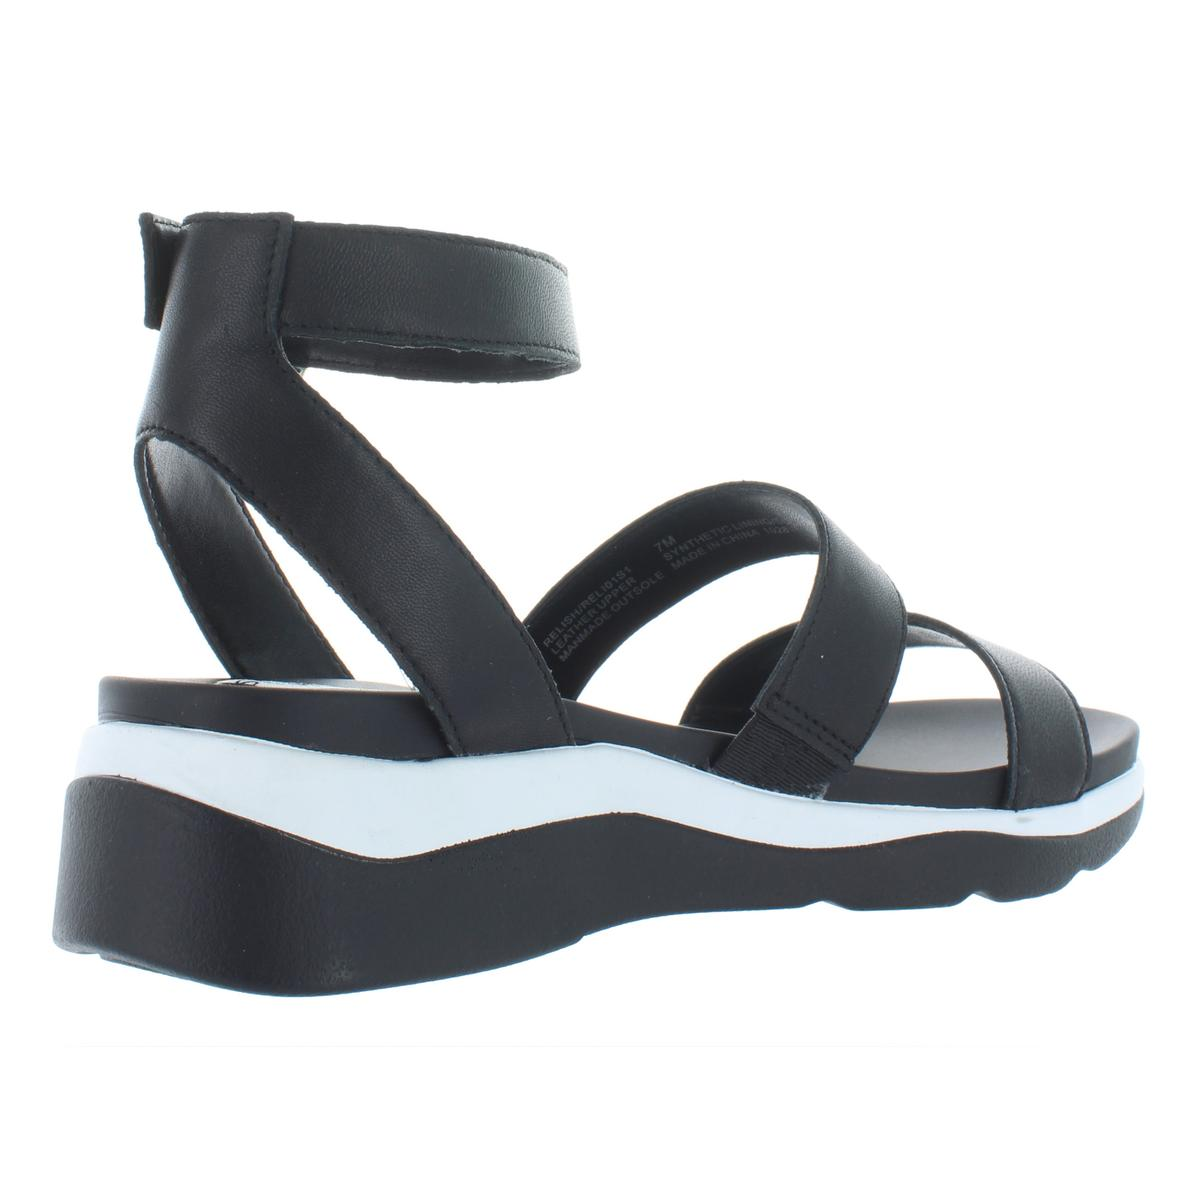 Steve-Madden-Womens-Relish-Leather-Wedge-Strappy-Sport-Sandals-Shoes-BHFO-6808 thumbnail 4